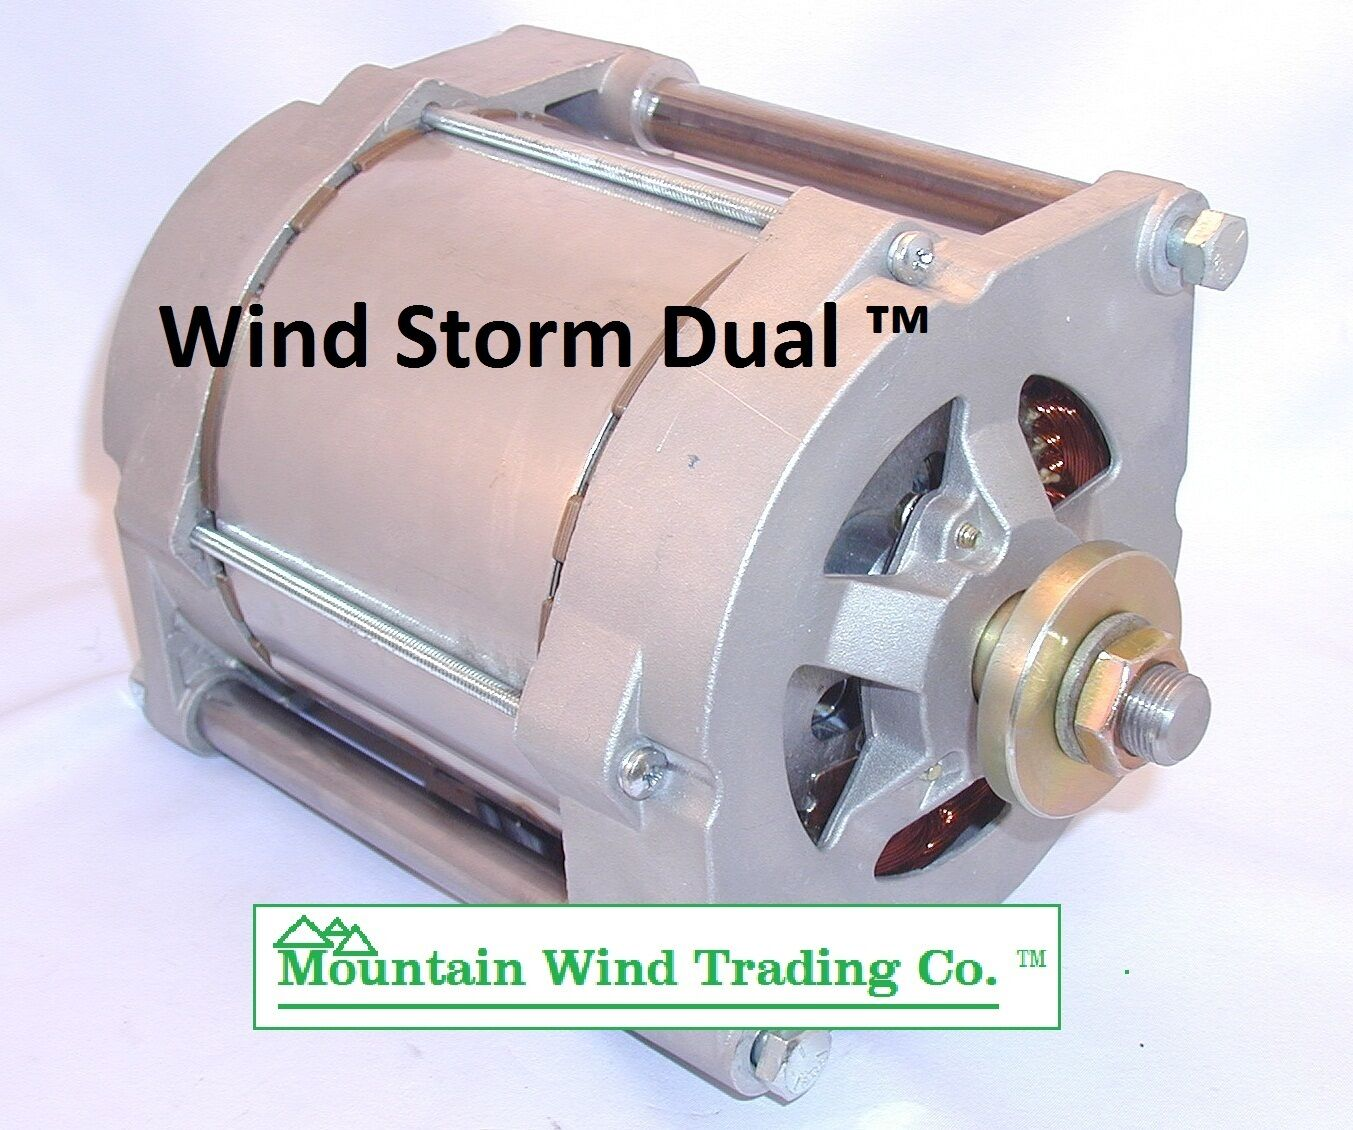 Car Alternator Wind Generator : Dual permanent magnet alternator pma from missouri wind